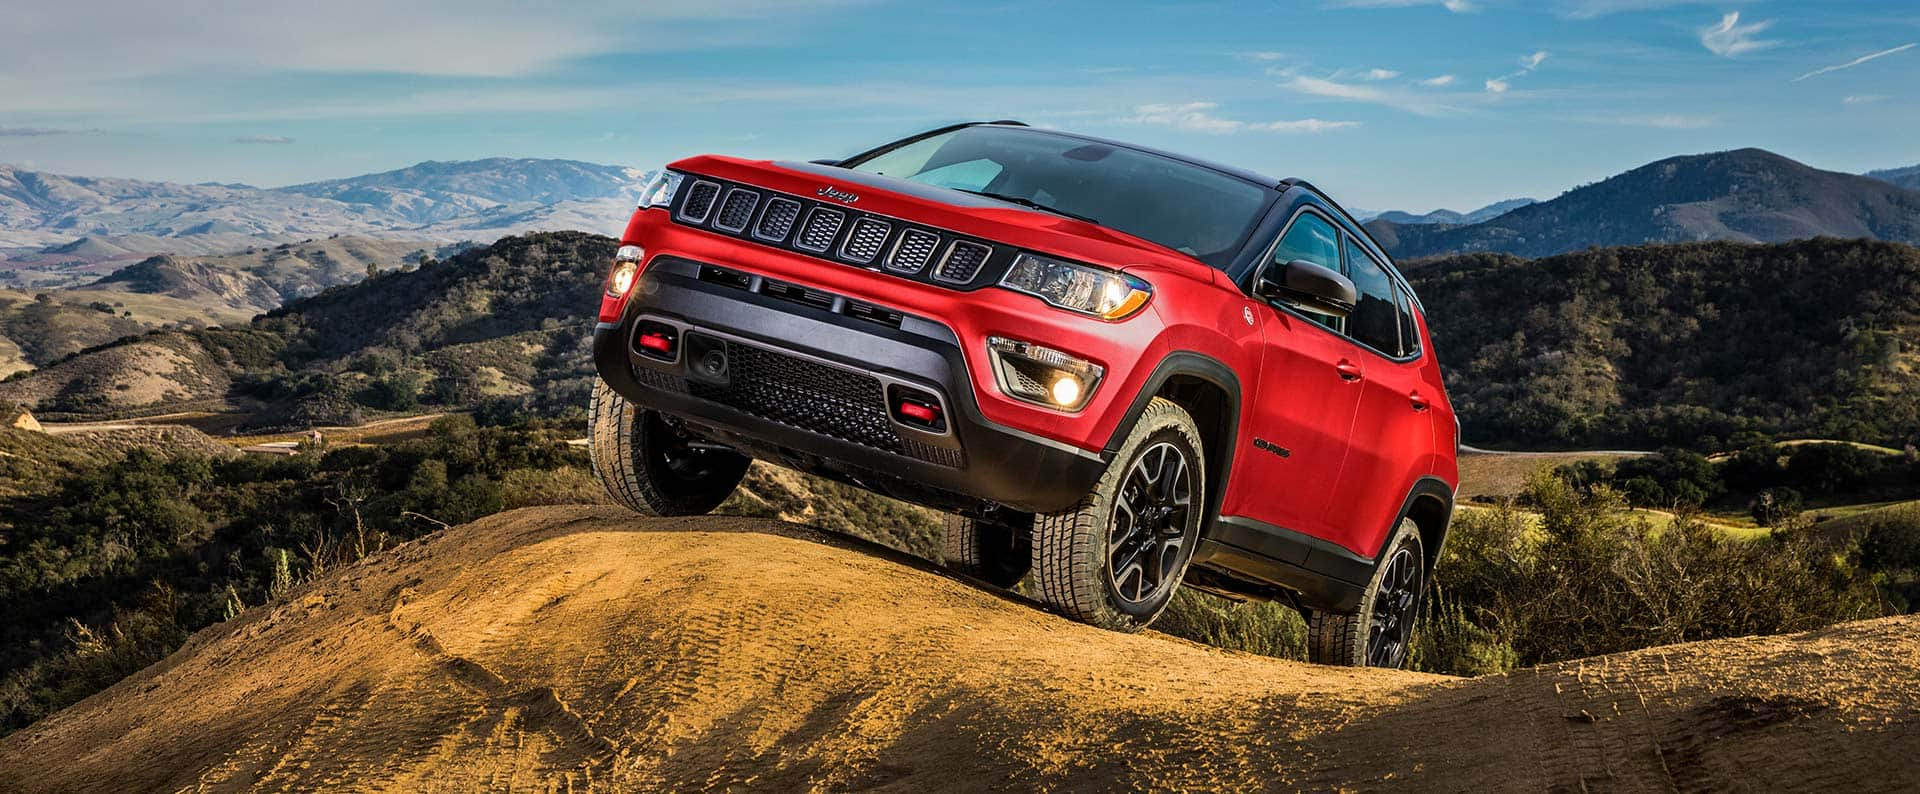 The 2021 Jeep Compass ascending a hill on a dirt track.